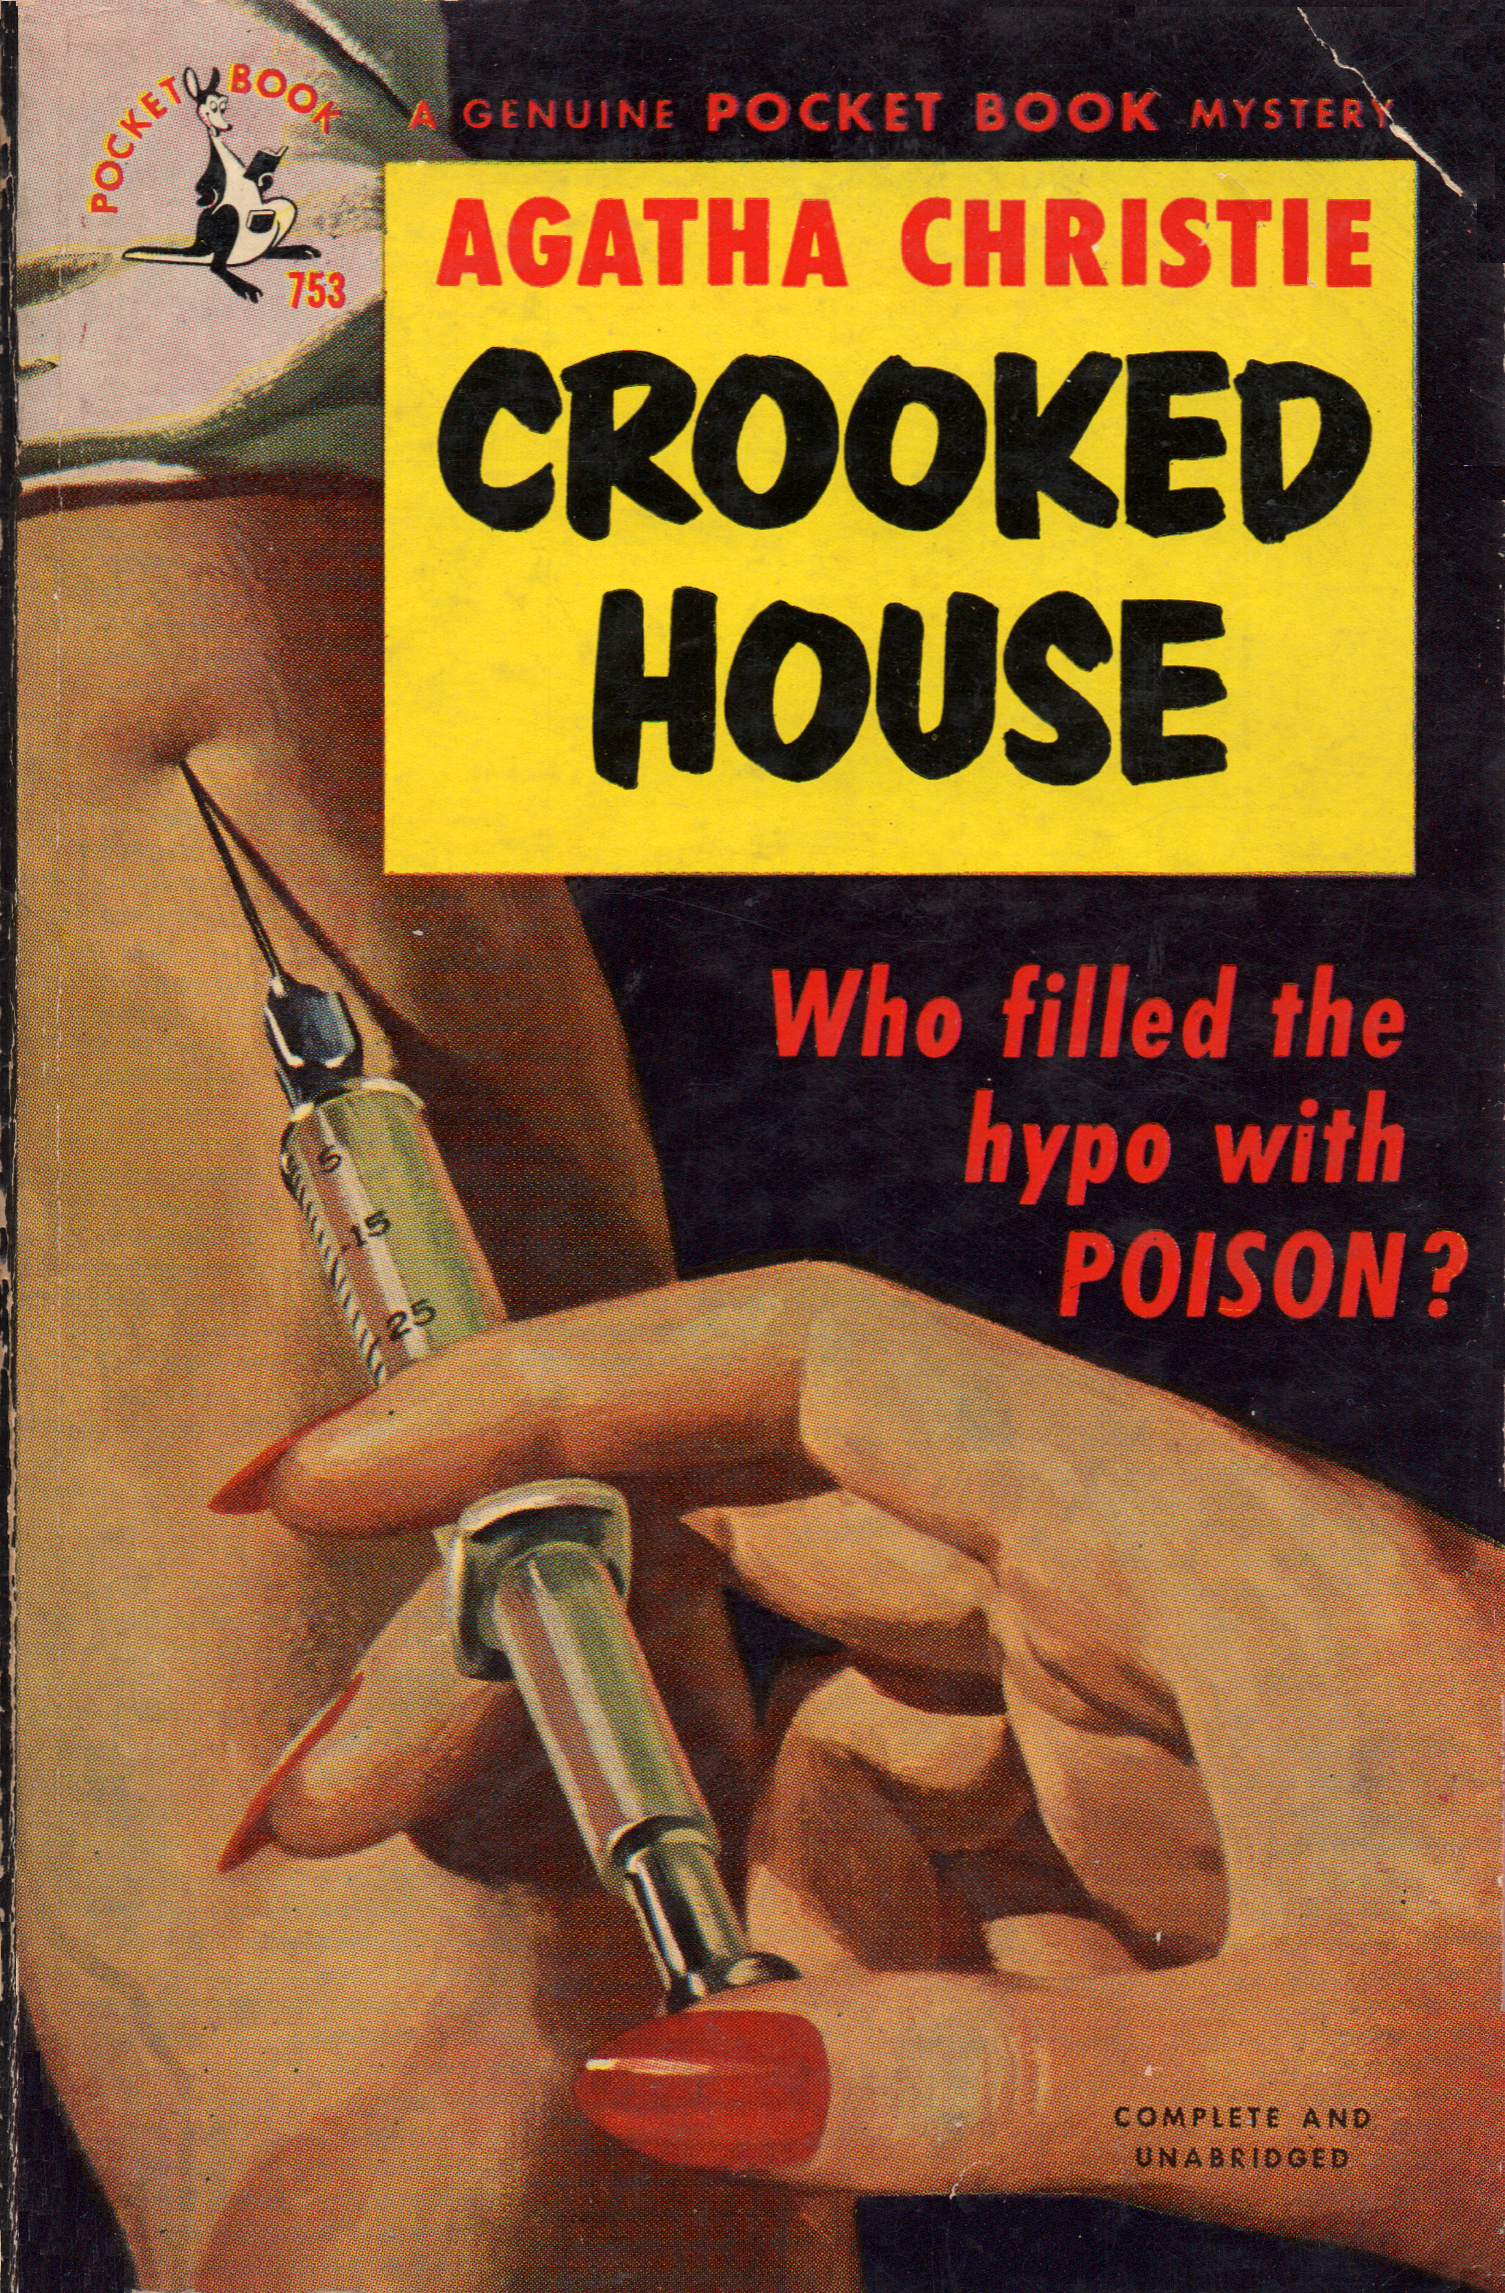 crooked house by agatha christie. pocket book edition,1950